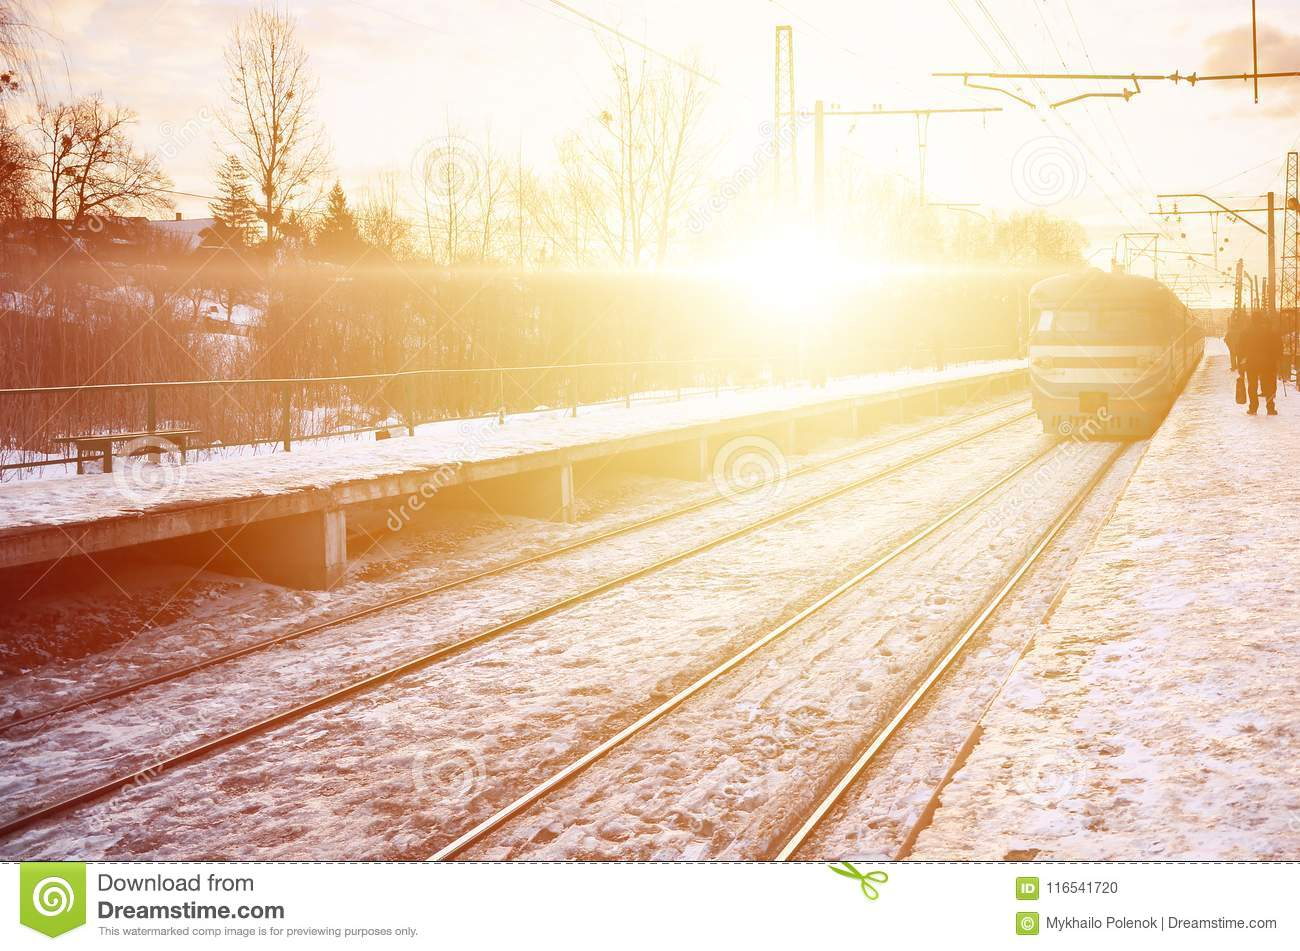 Photo of bright and beautiful sunset on a cloudy sky in cold winter season. Railway track with platforms for waiting trains and p